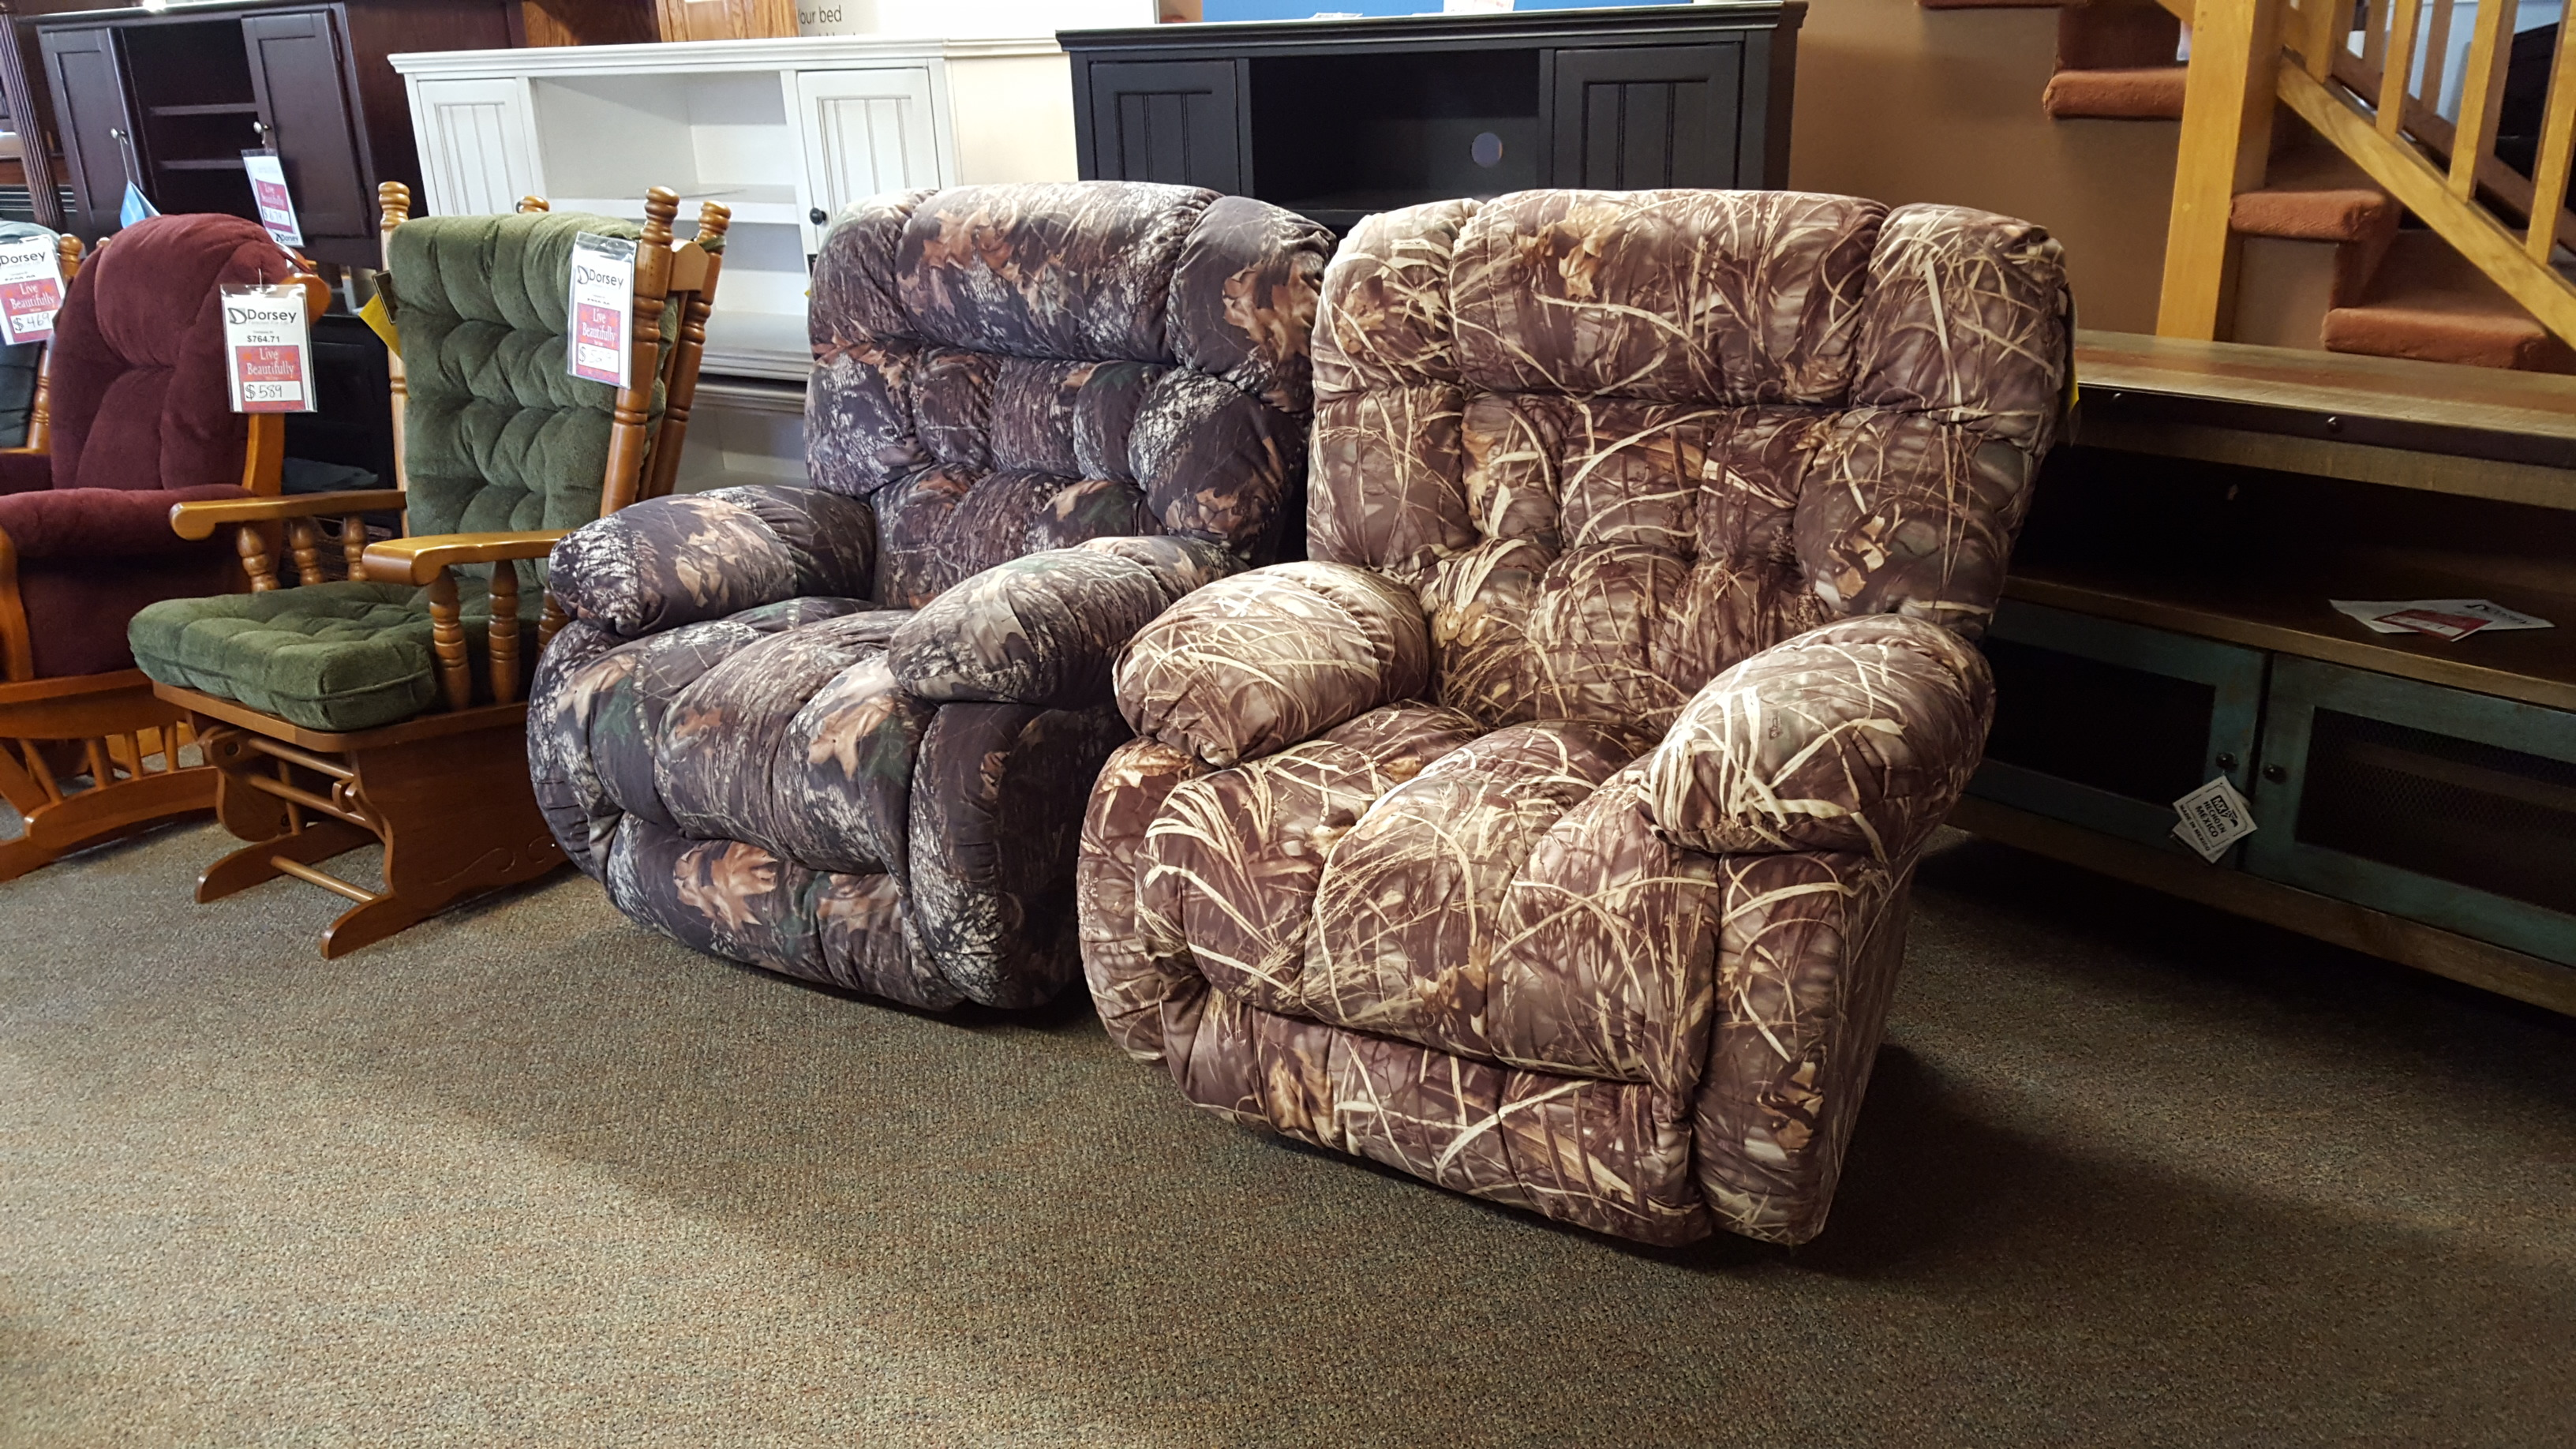 Best Chair Camo recliners!!! - Furniture Store Bangor Maine Living Room Dining Room Bedroom Sets | Dorsey Furniture Bangor Maine & Best Chair Camo recliners!!! - Furniture Store Bangor Maine ... islam-shia.org